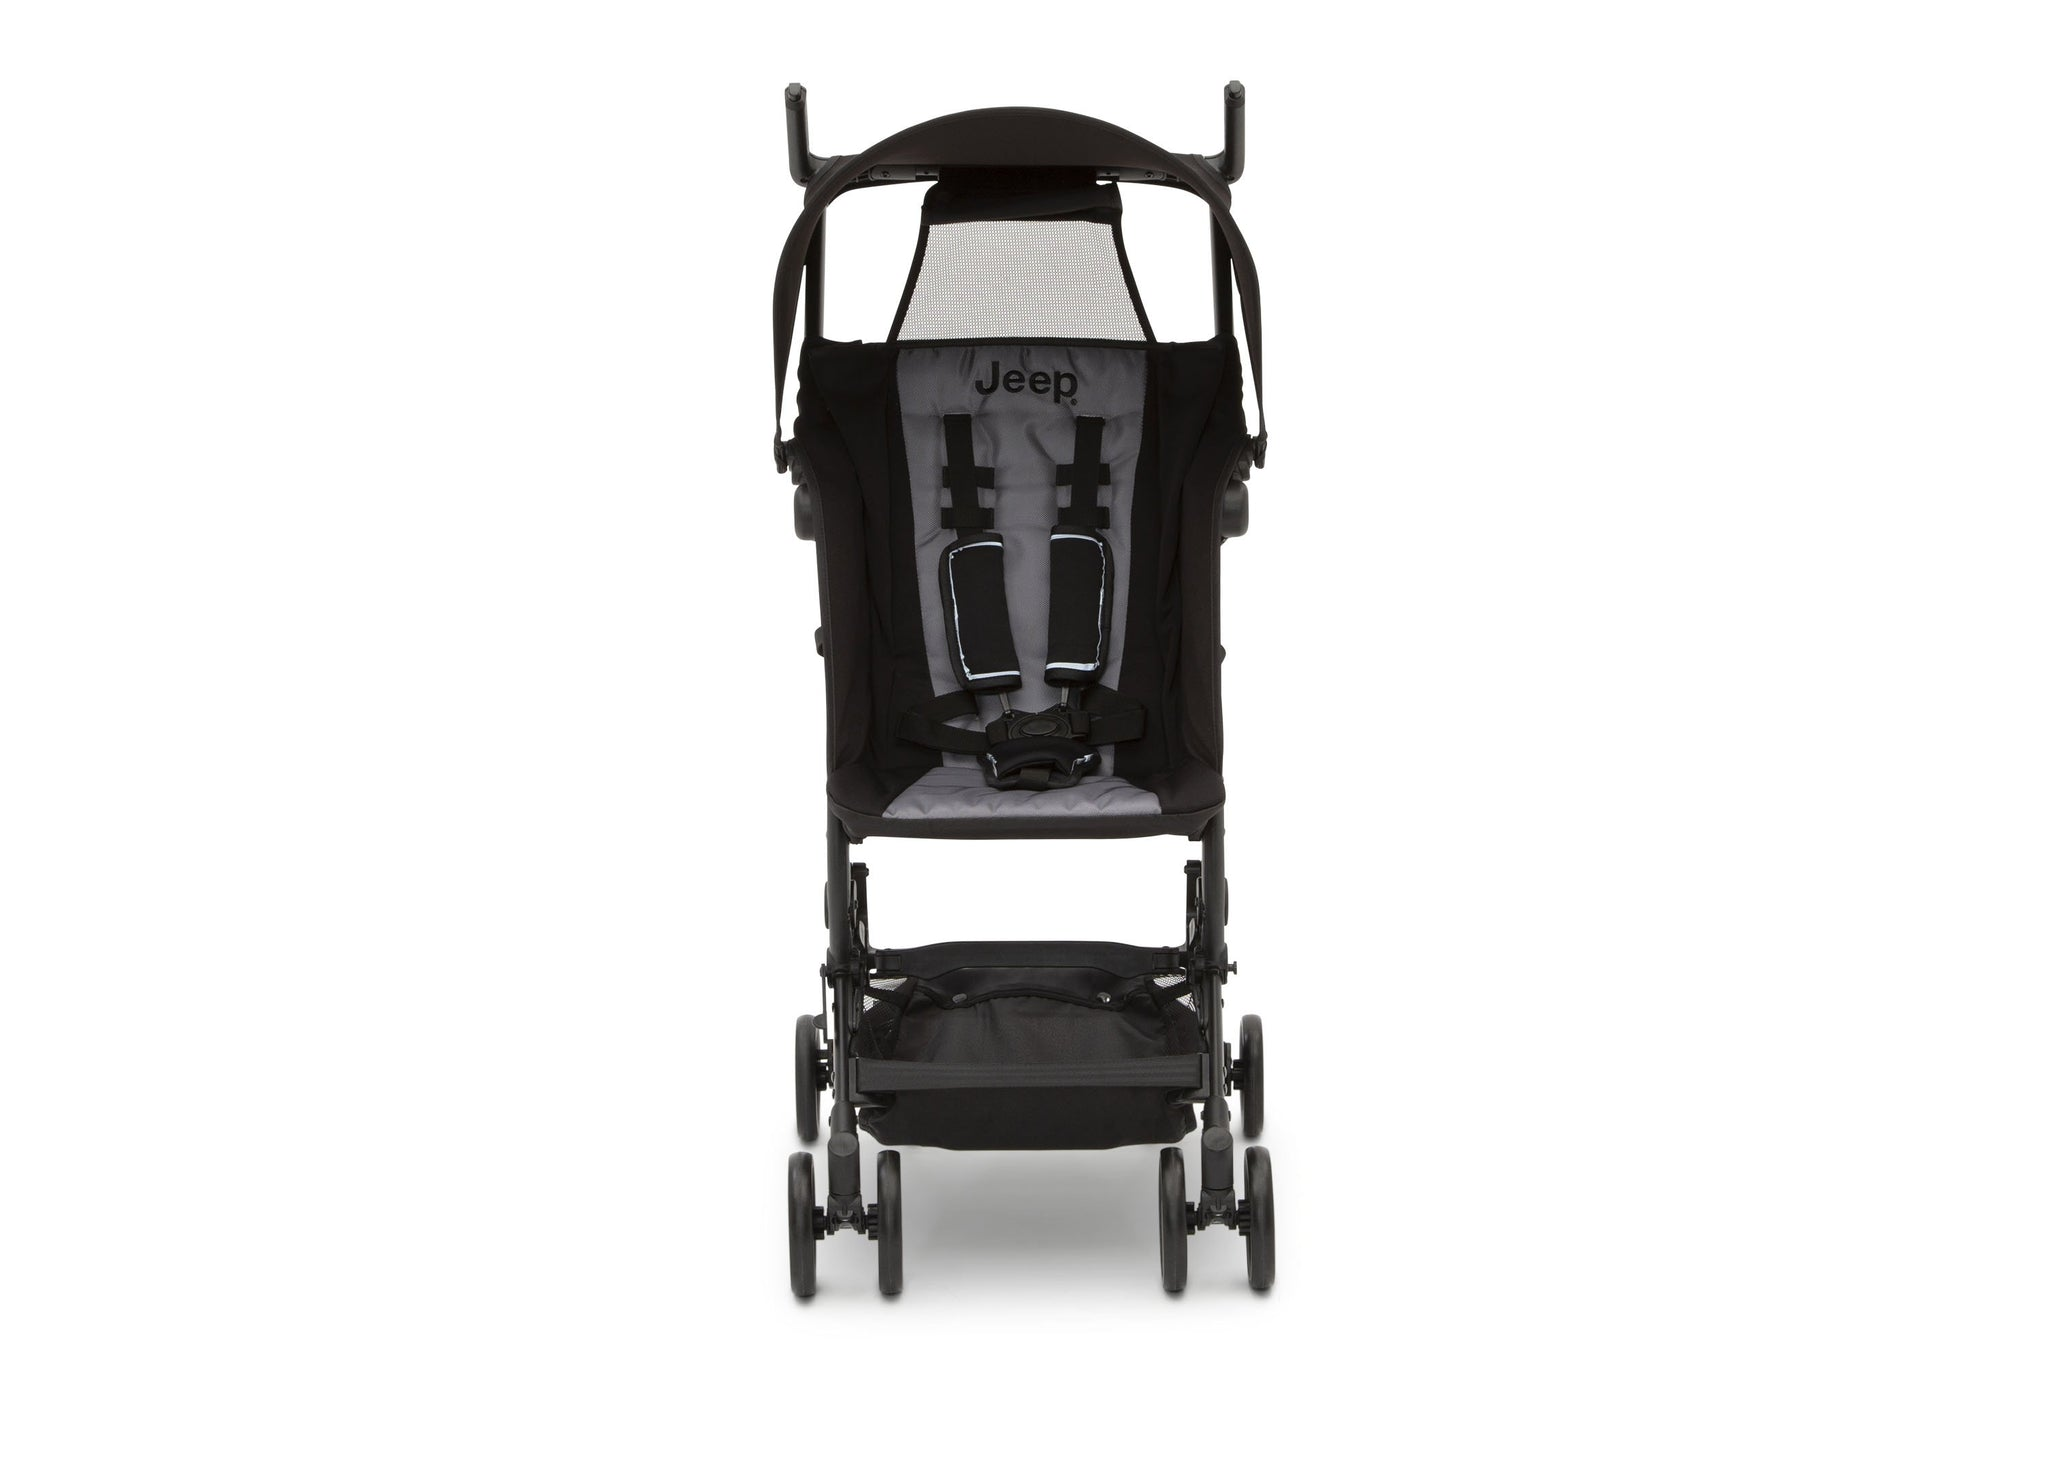 Jeep® Clutch Plus Travel Stroller with Reclining Seat Black with Grey (2184), Front View with reclining seat